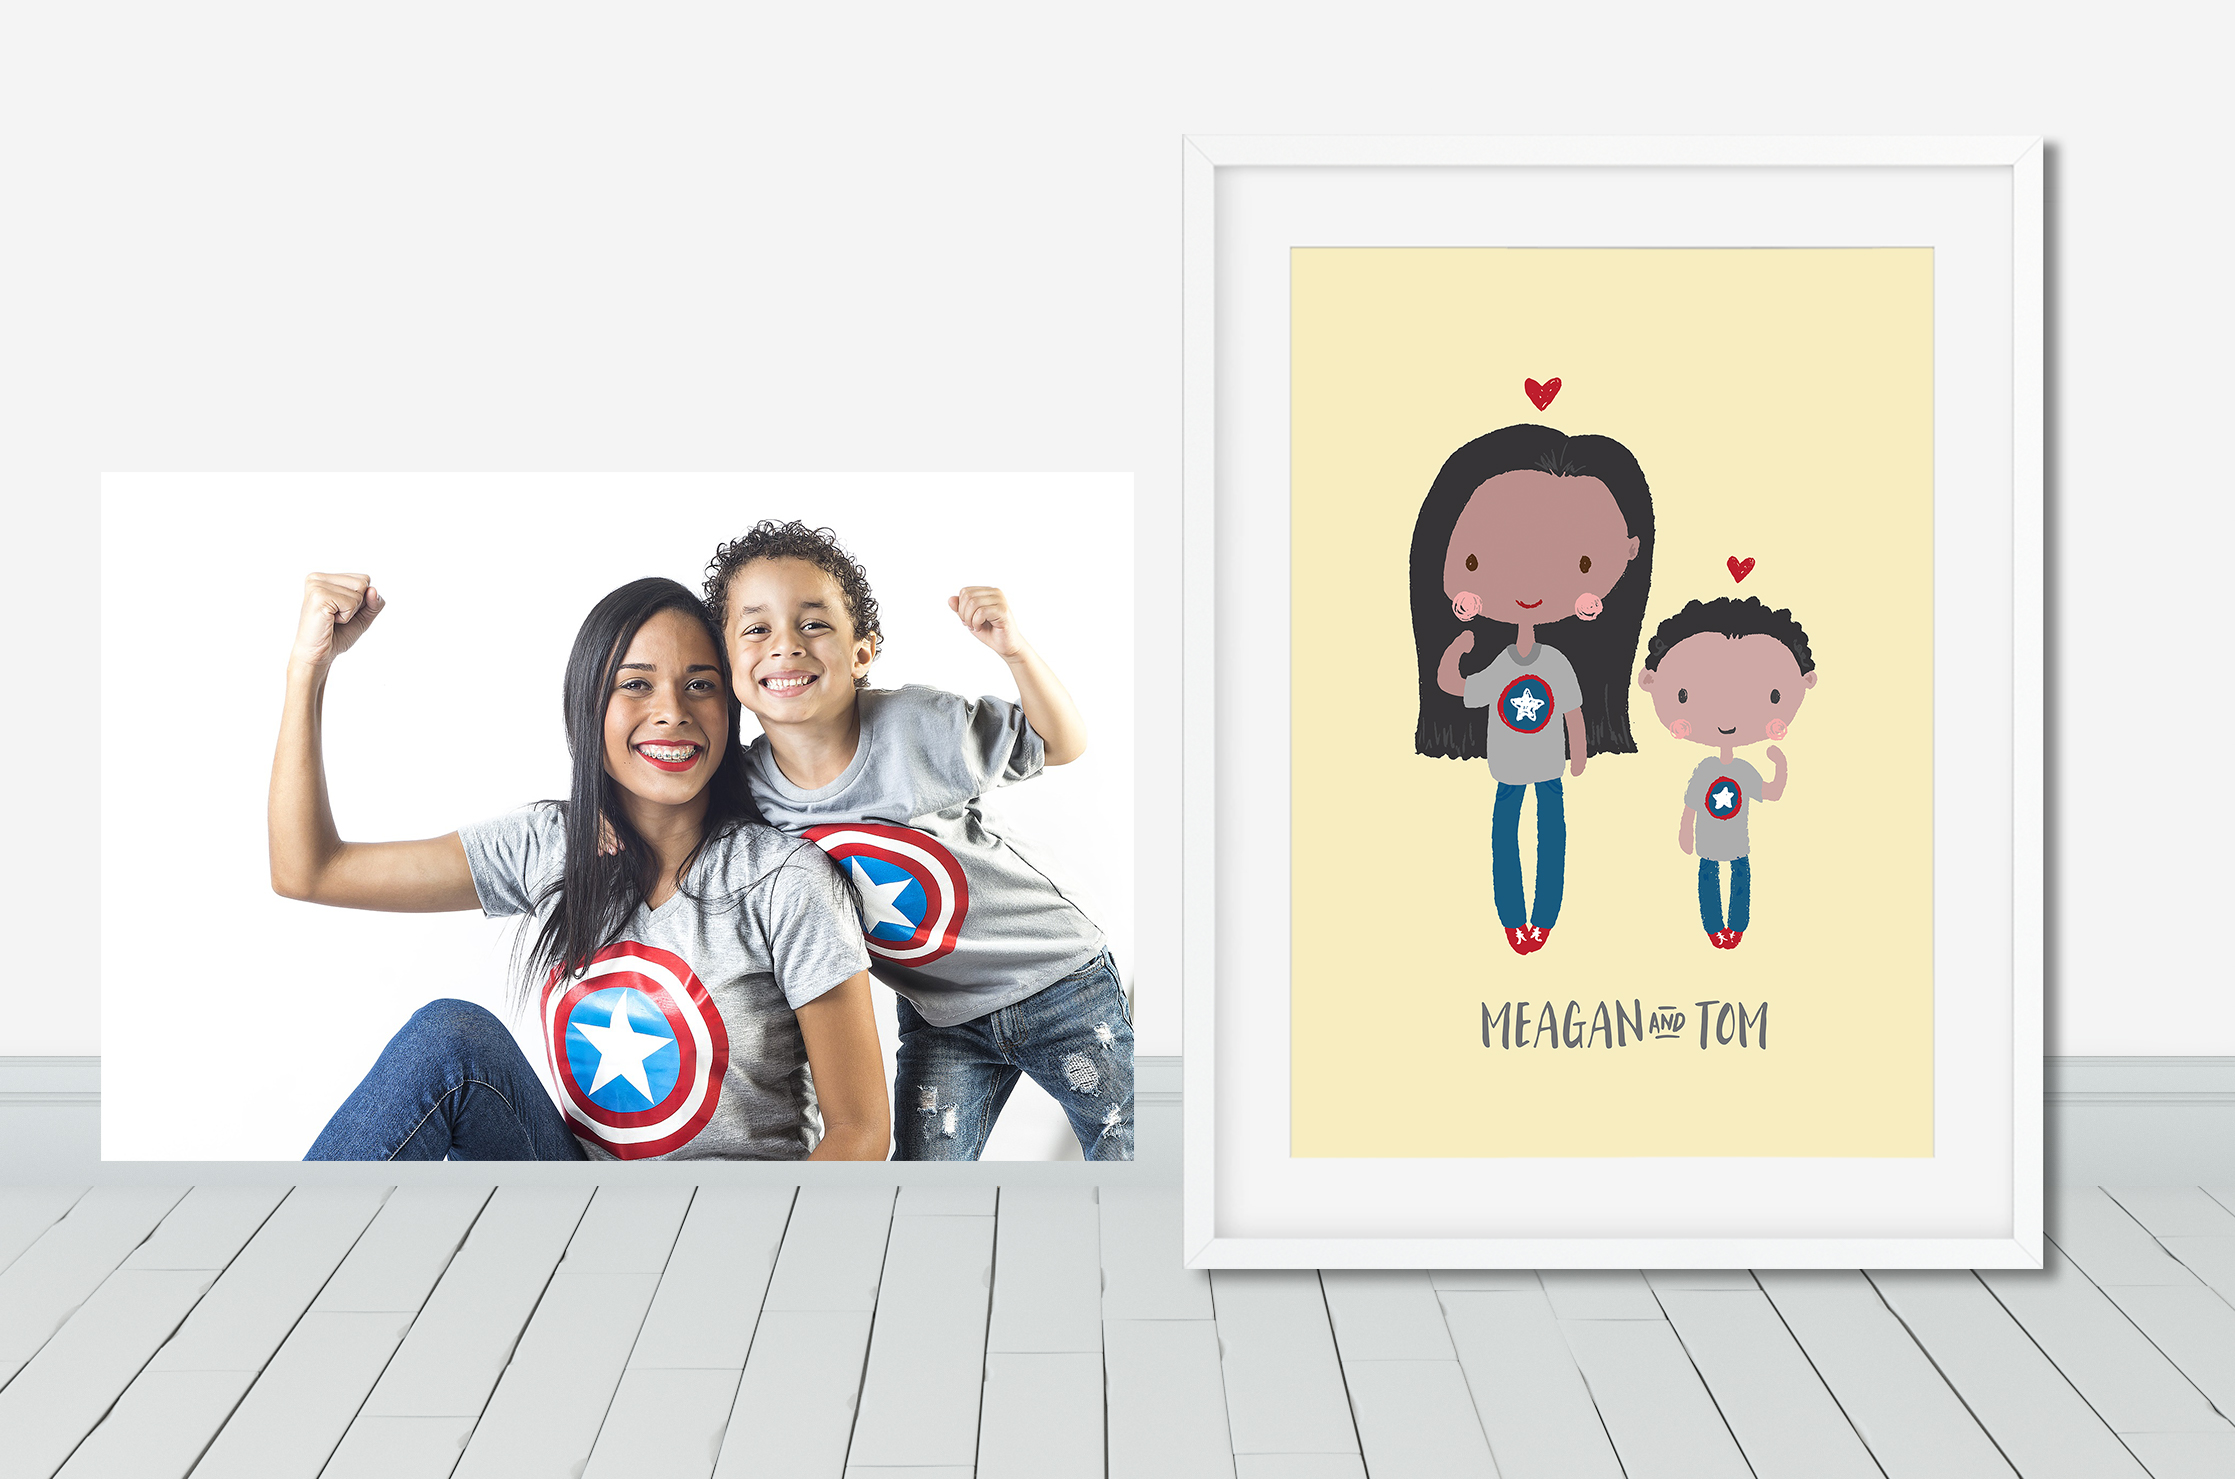 Custom-mother-son-daughter-portrait-personalized-family-gift-idea-unique-mother-day-gift-hello-godiche-shop.jpg